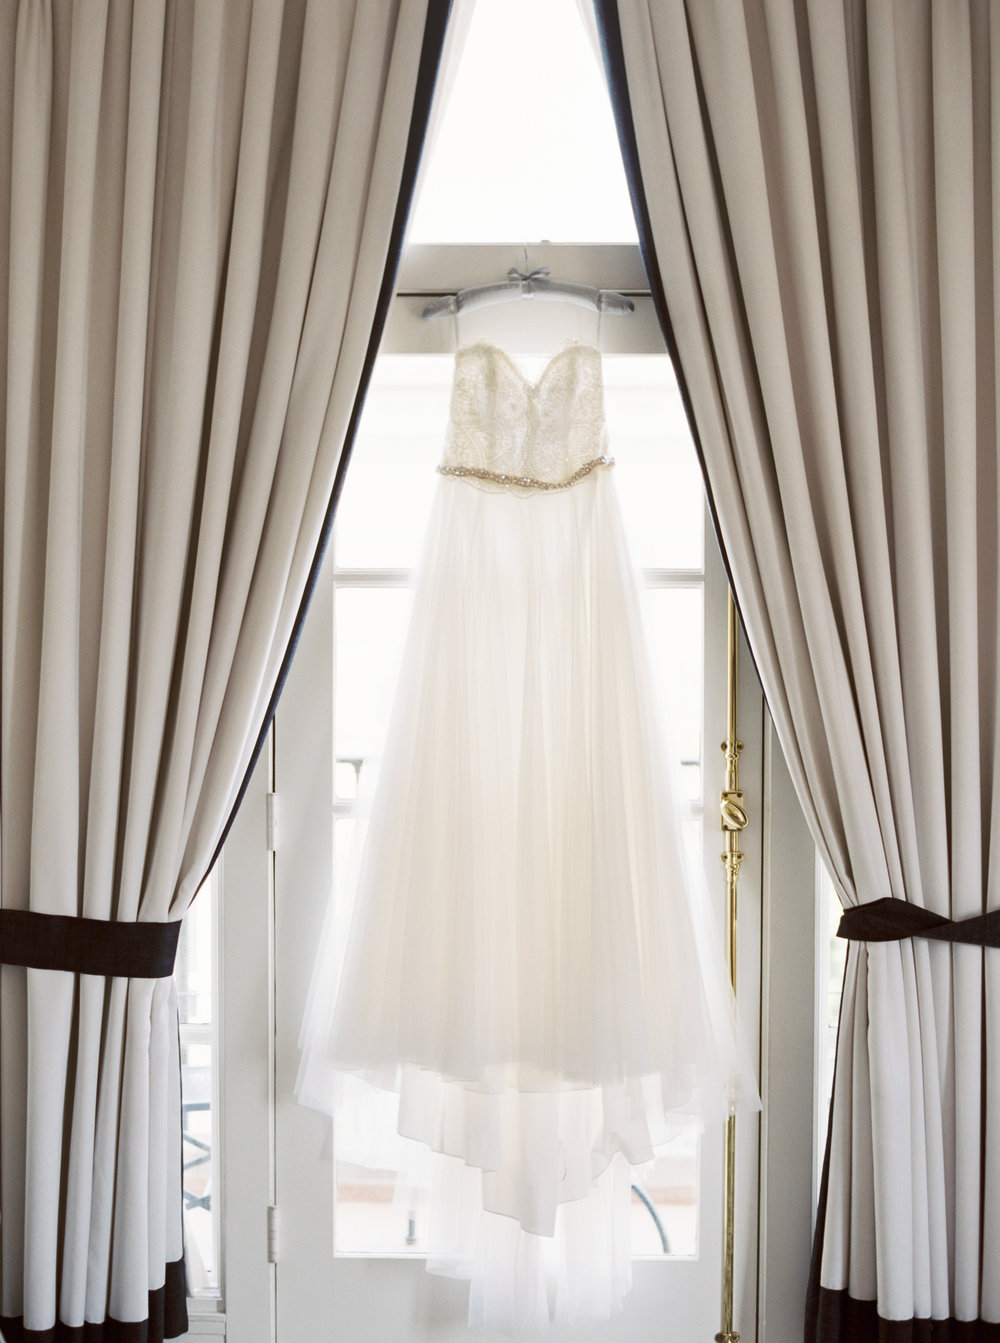 trynhphoto_wedding_photography_Standford_PaloAlto_SF_BayArea_Destination_OC_HA-37.jpg